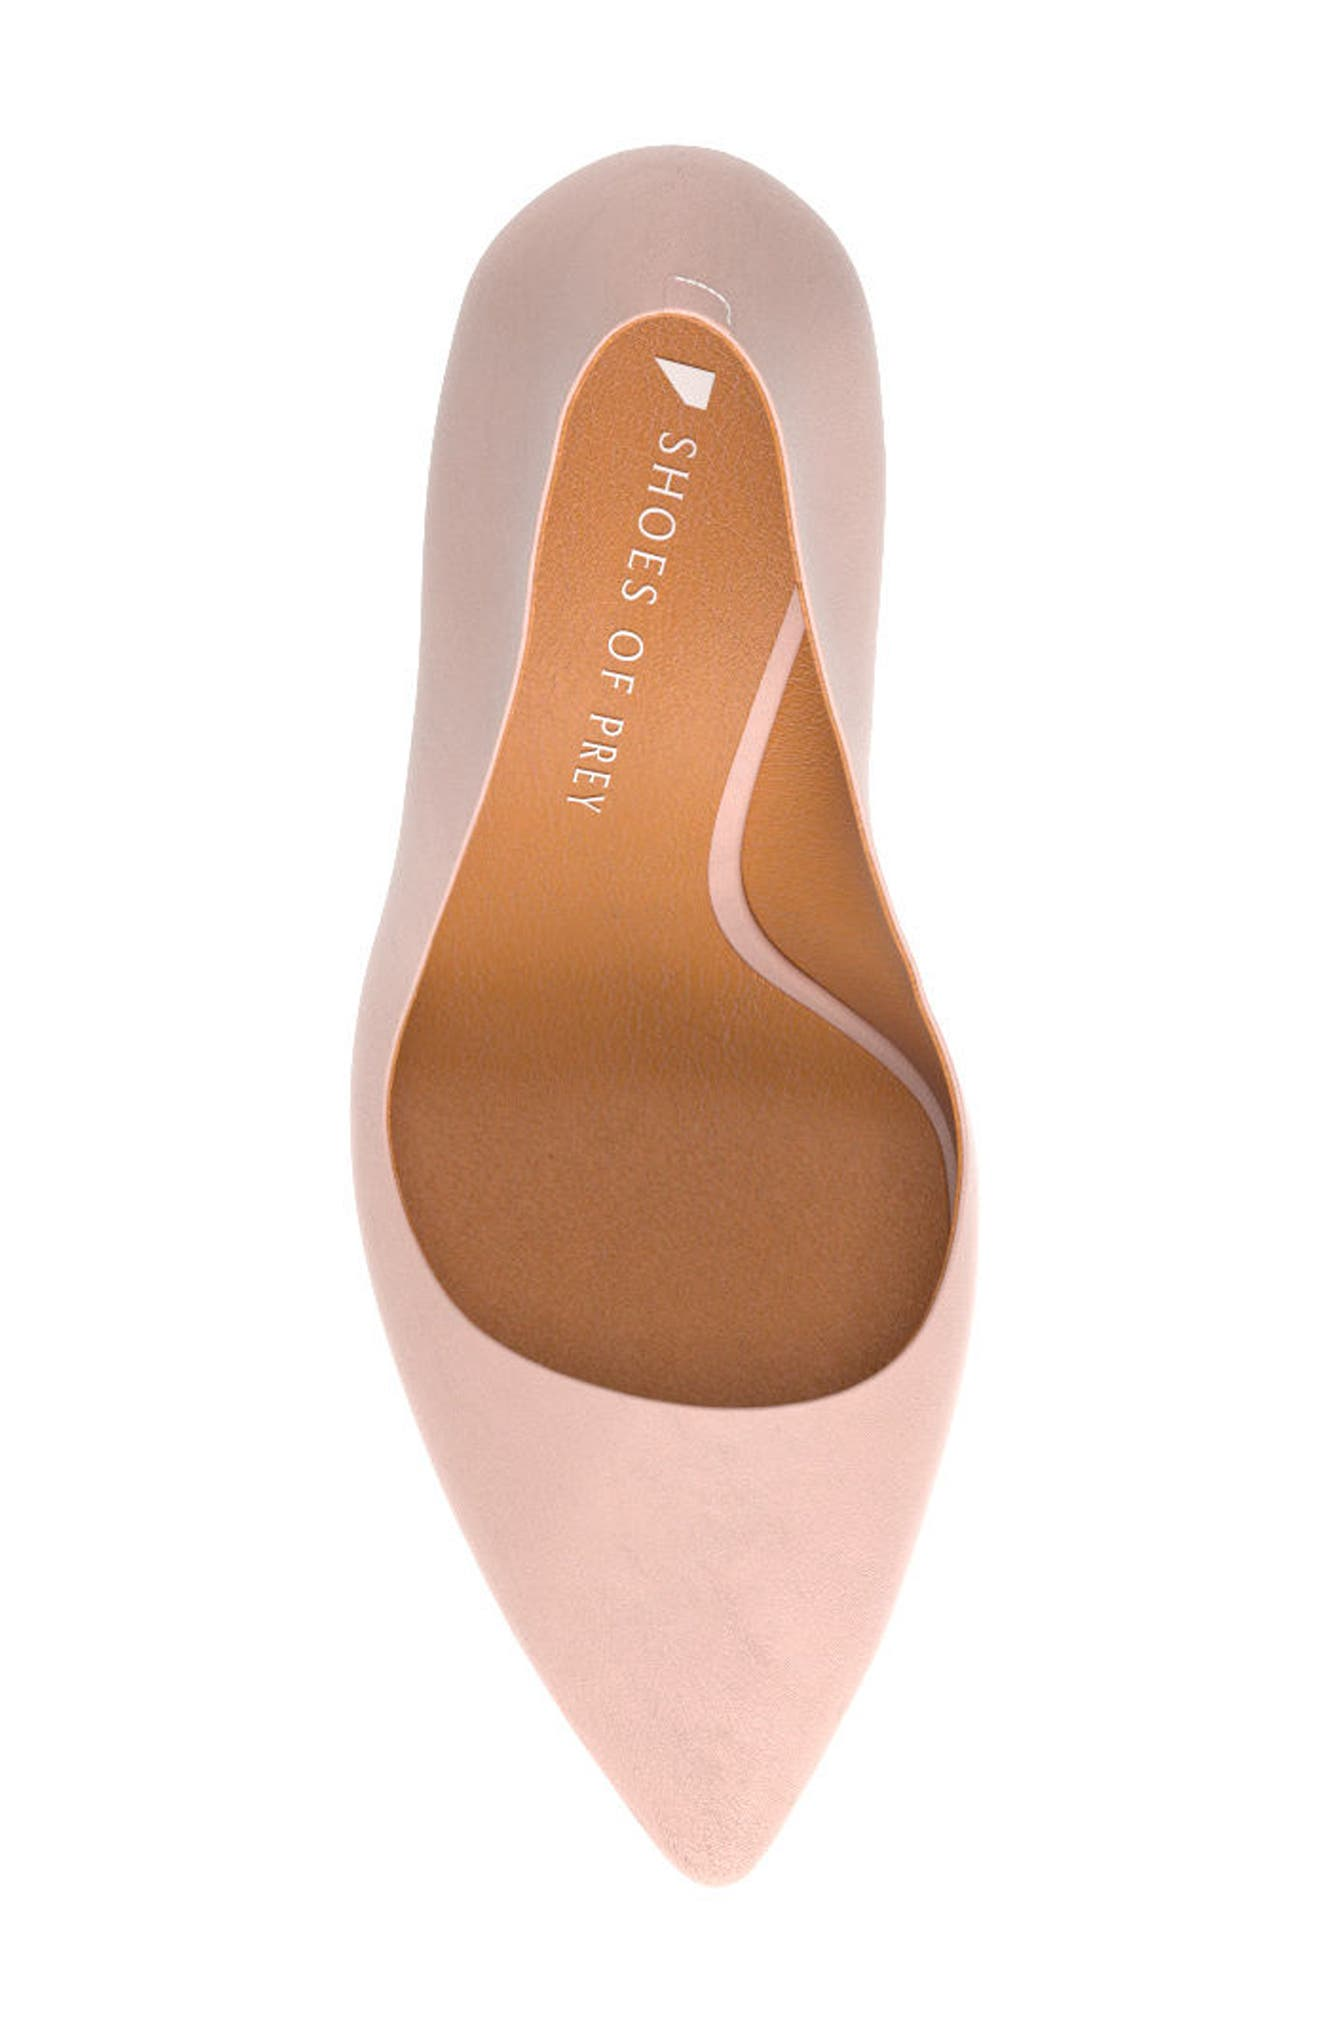 Pointy Toe Pump,                             Alternate thumbnail 6, color,                             Blush Nude Leather